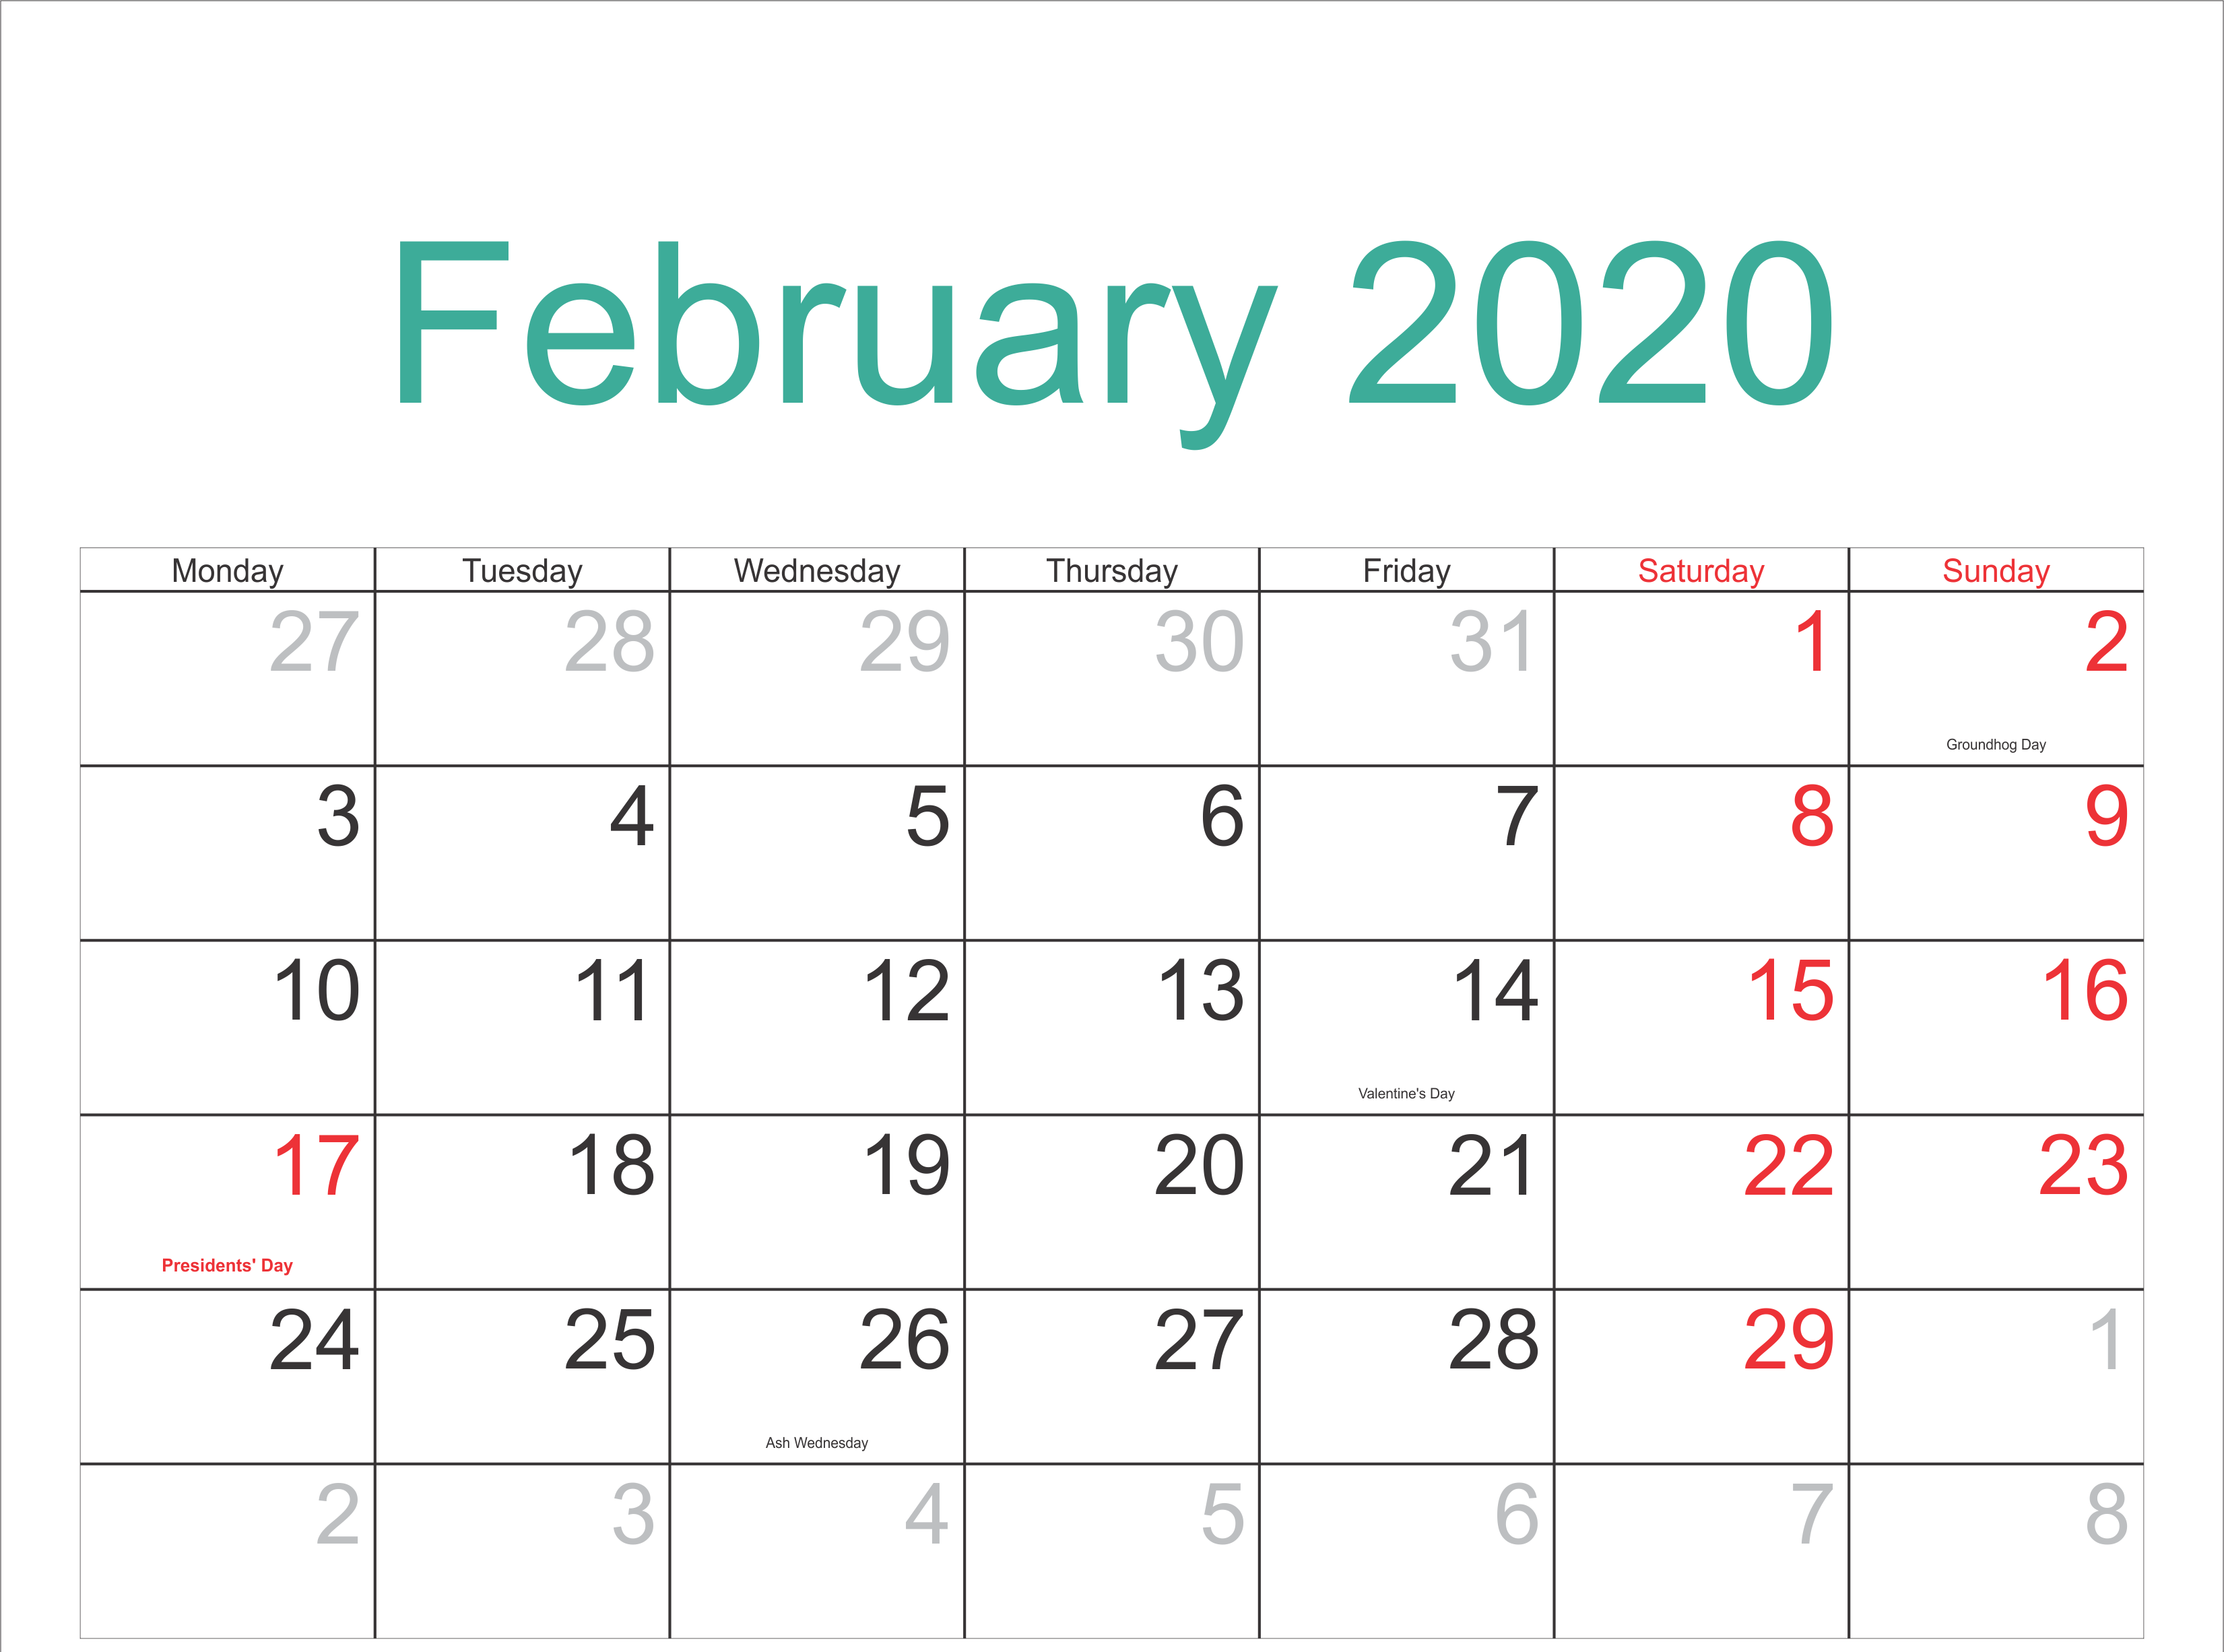 February 2020 Calendar With Holidays Template